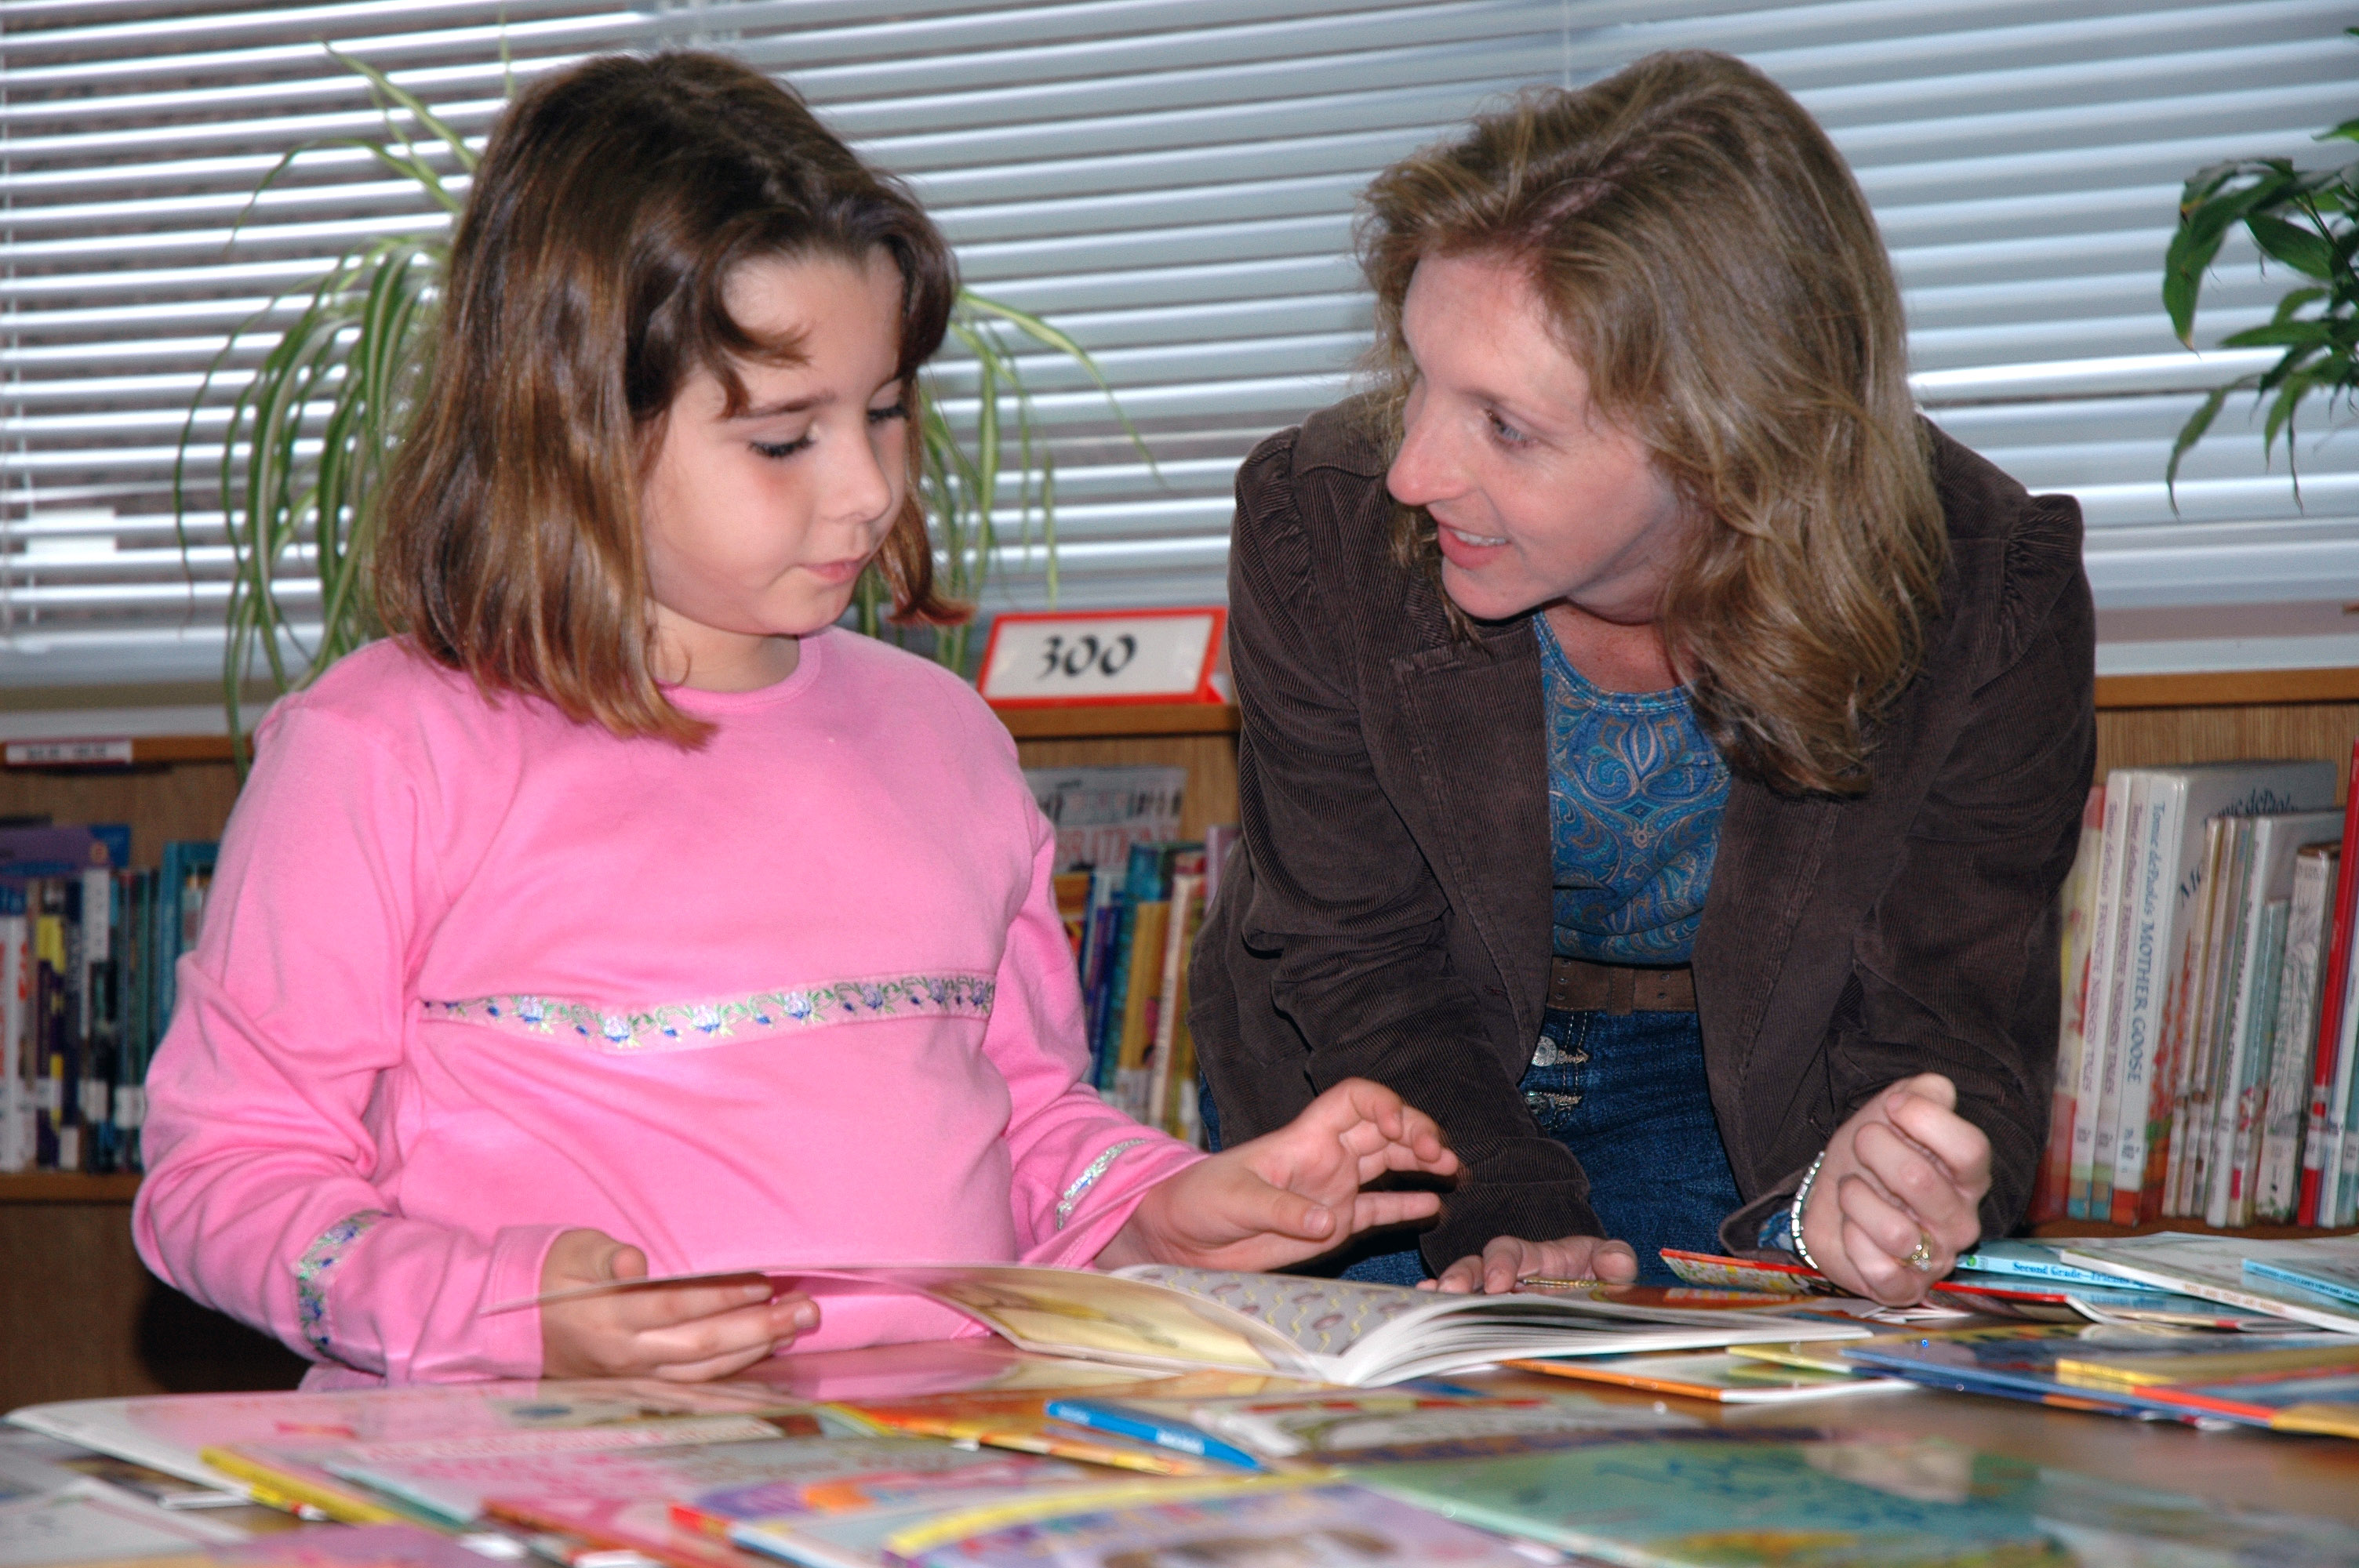 061026-N-5271J-014 Sasebo, Japan (Oct. 26, 2006) - Jennifer Tonder (right), a teacher's aide for a 3rd-4th grade multi-age class, discusses the various books available from the Reading Is Fundamental (RIF) grant given to Sasebo Elementary School with a student. The RIF donated 1,000 books to the school's library. Sasebo Elementary was the first overseas school to receive the RIF grant. U.S. Navy Photo by Mass Communication Specialist 3rd Class Jeff Johnstone (RELEASED)